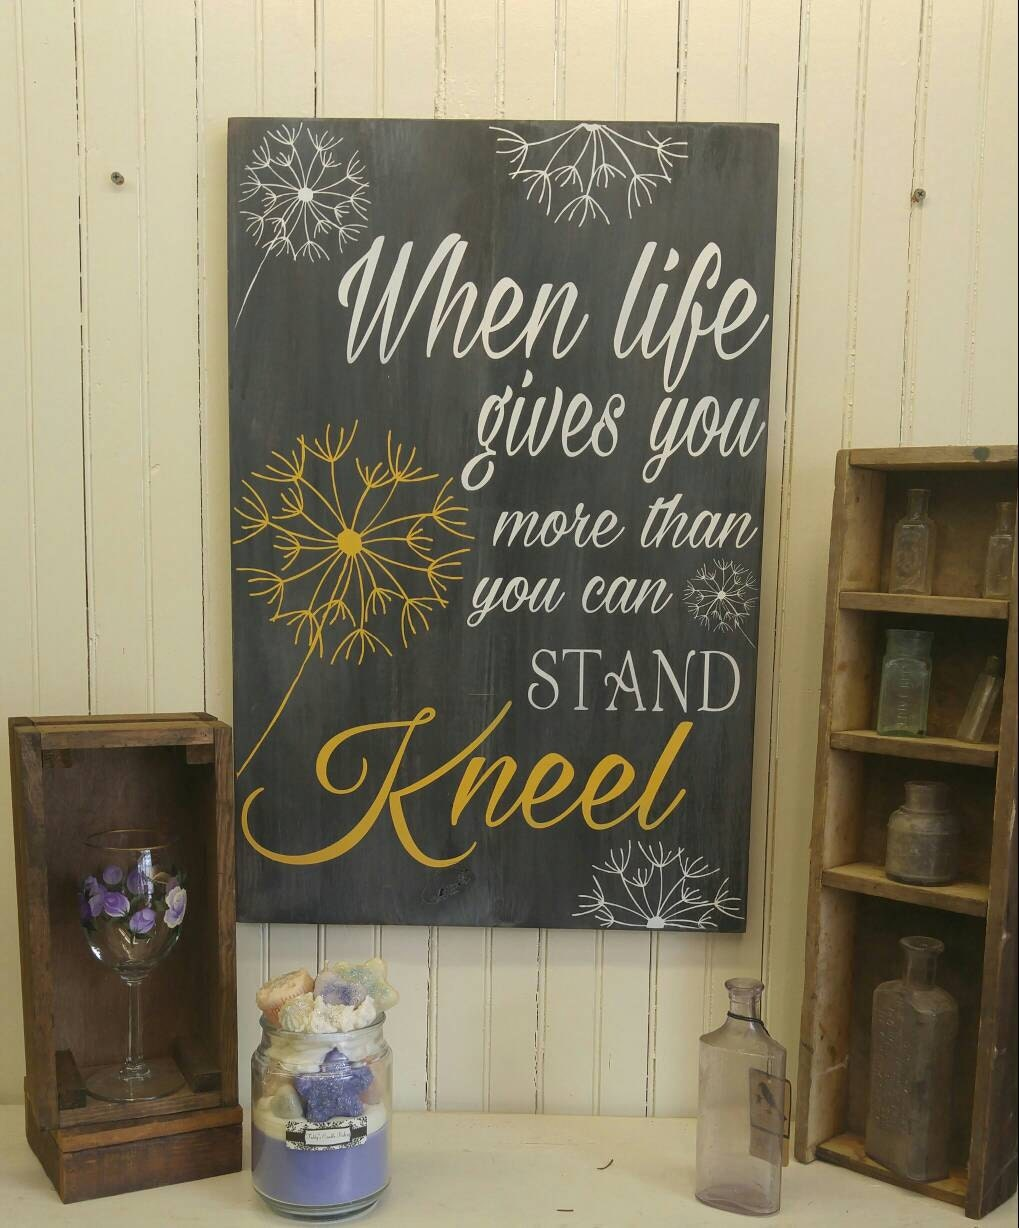 Christian home decor - When Life Gives You More Than You Can Stand Kneel Christian Wall Art Inspirational